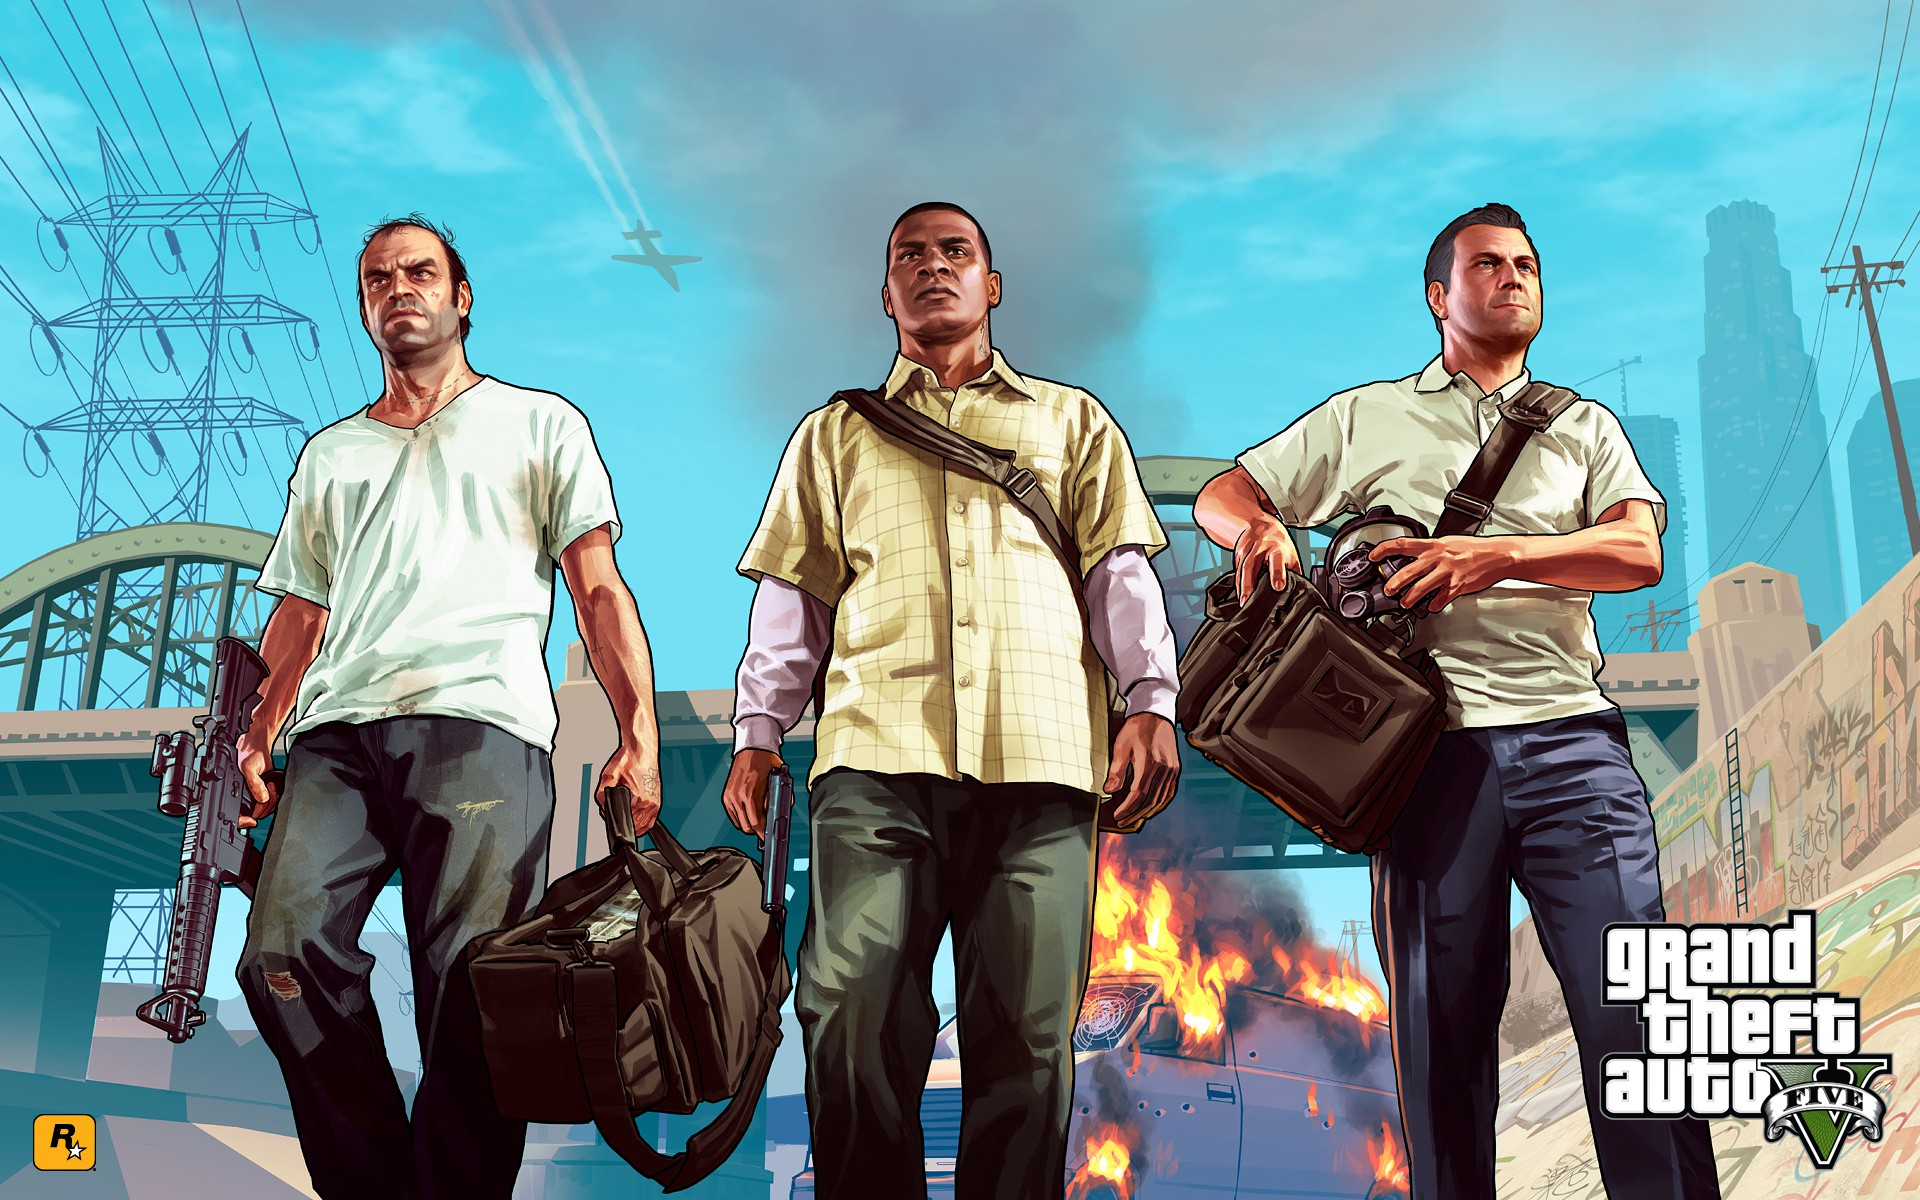 gta5-artwork-12-hd.jpg